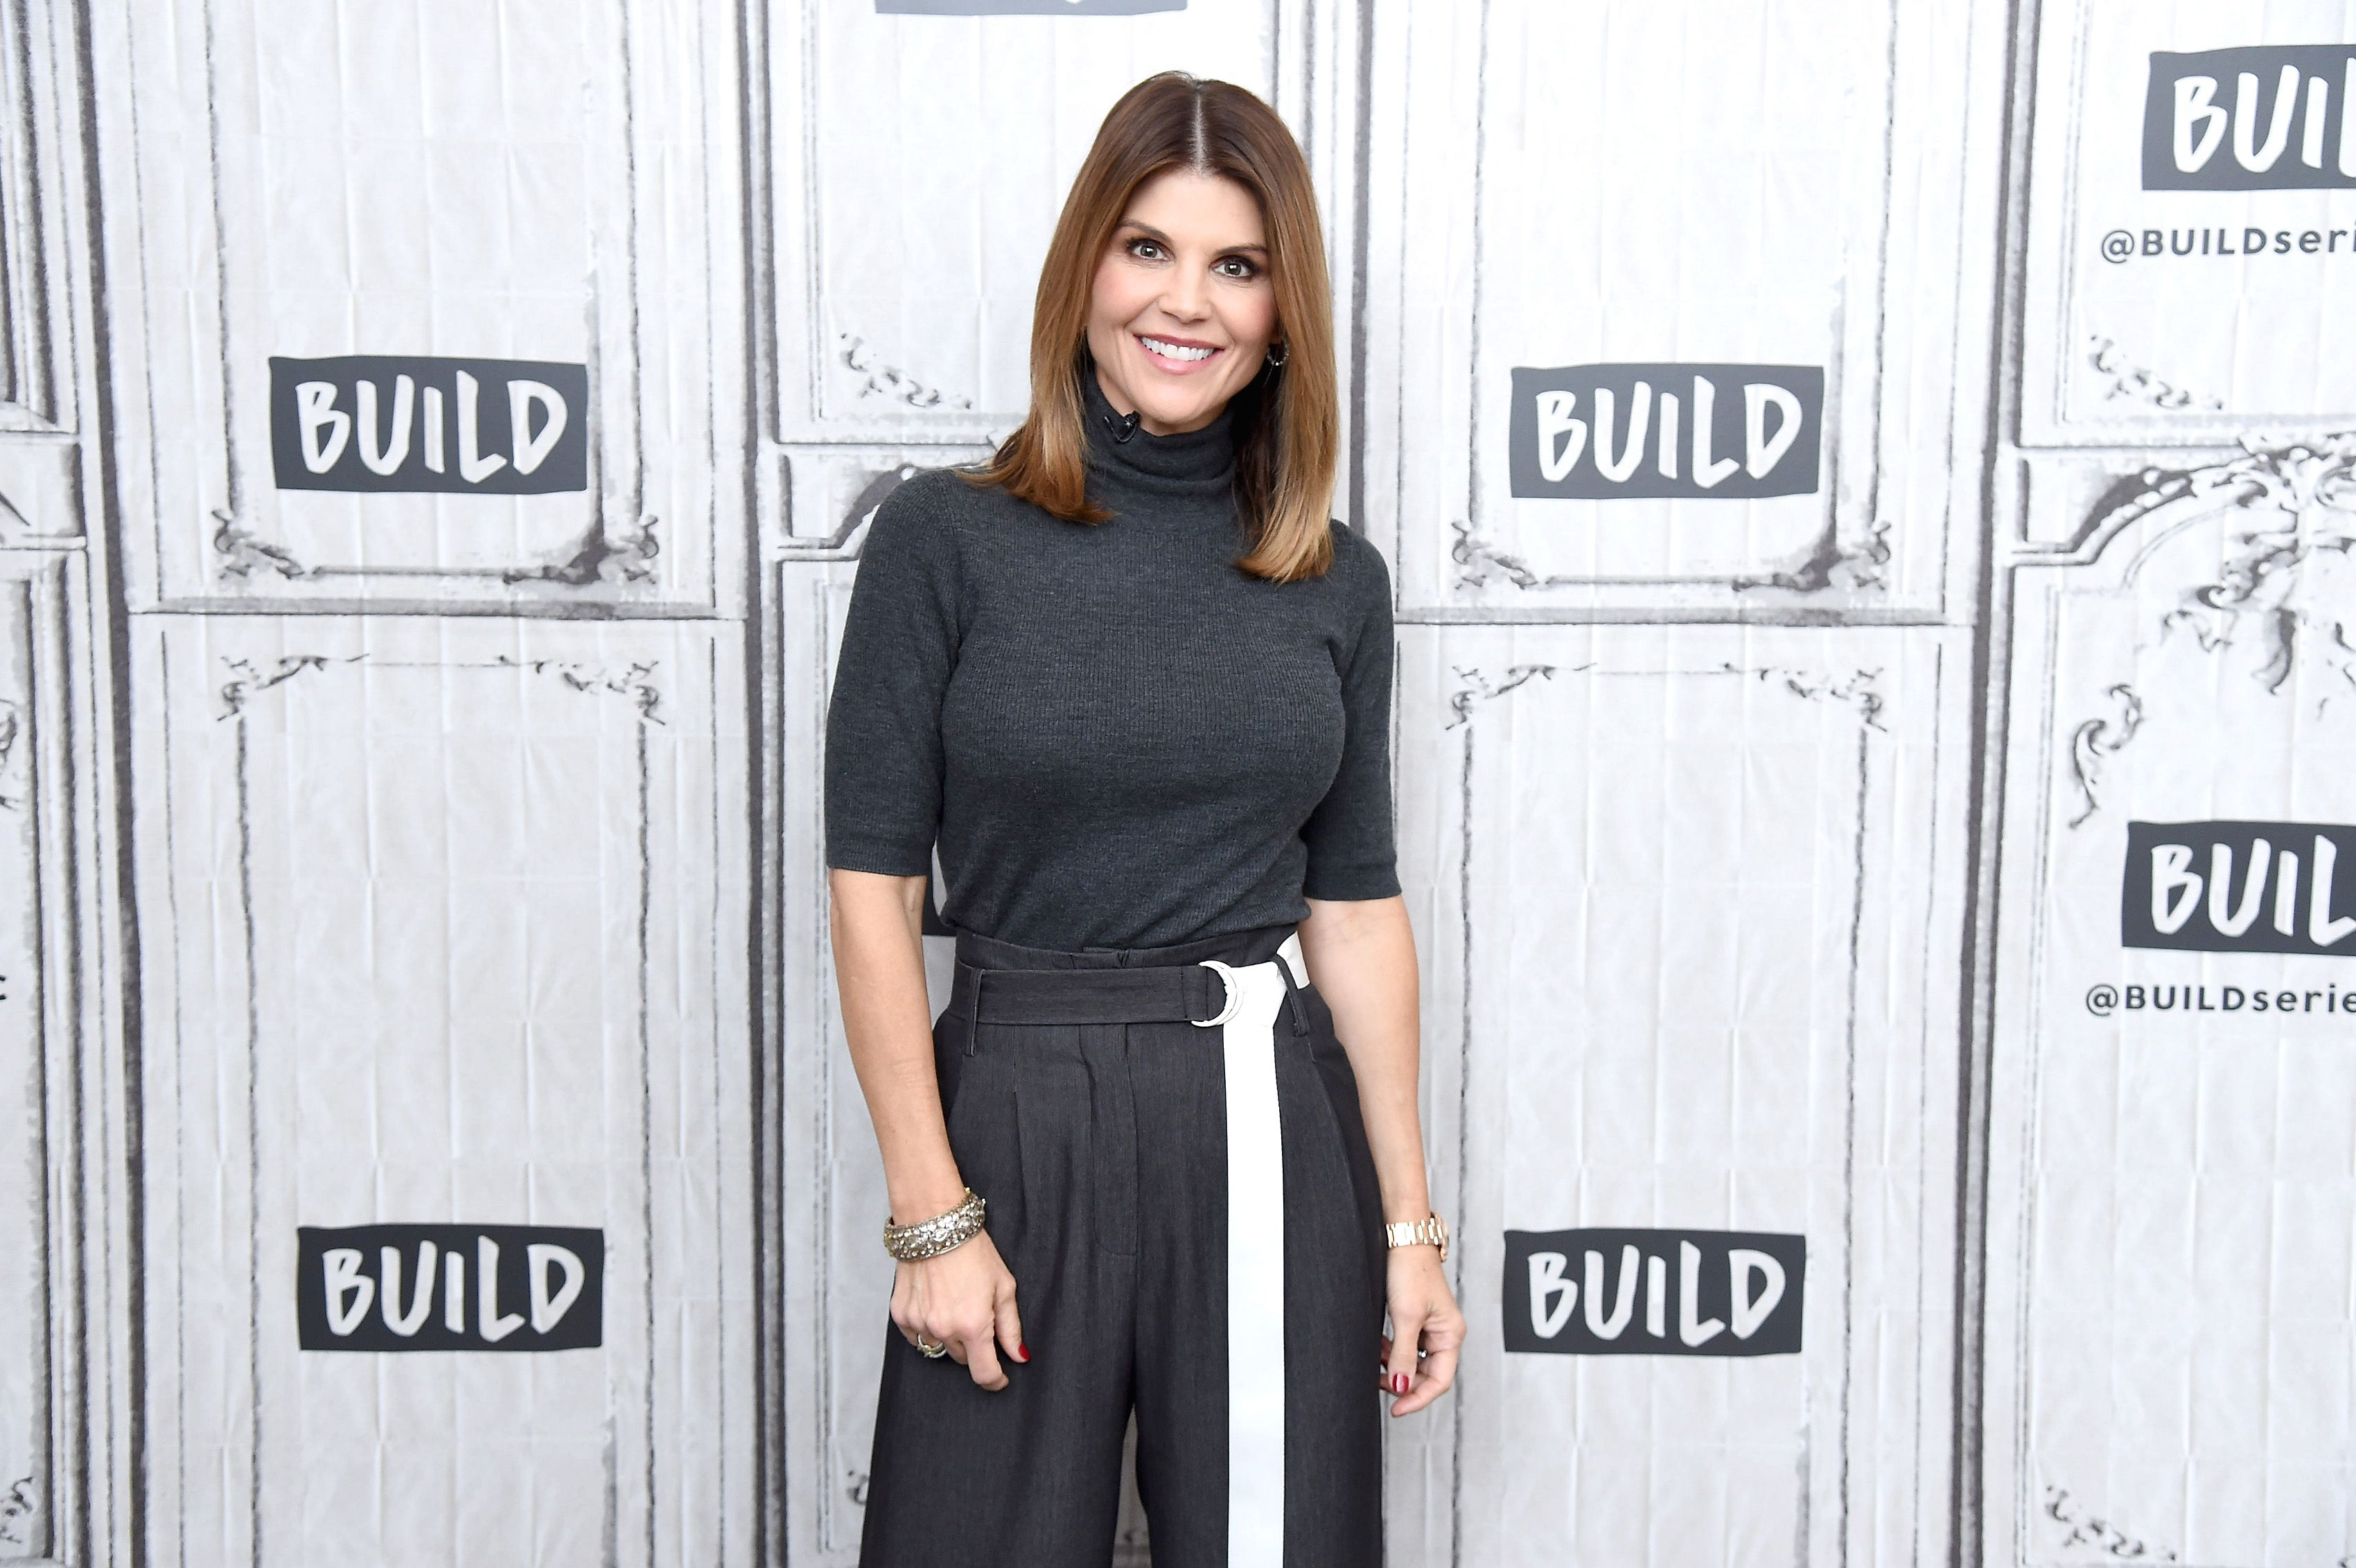 Actress Lori Loughlin at the Build Brunch to discuss the Hallmark Channel TV series 'When Calls the Heart' at Build Studio on February 14, 2019 | Photo: Getty Images